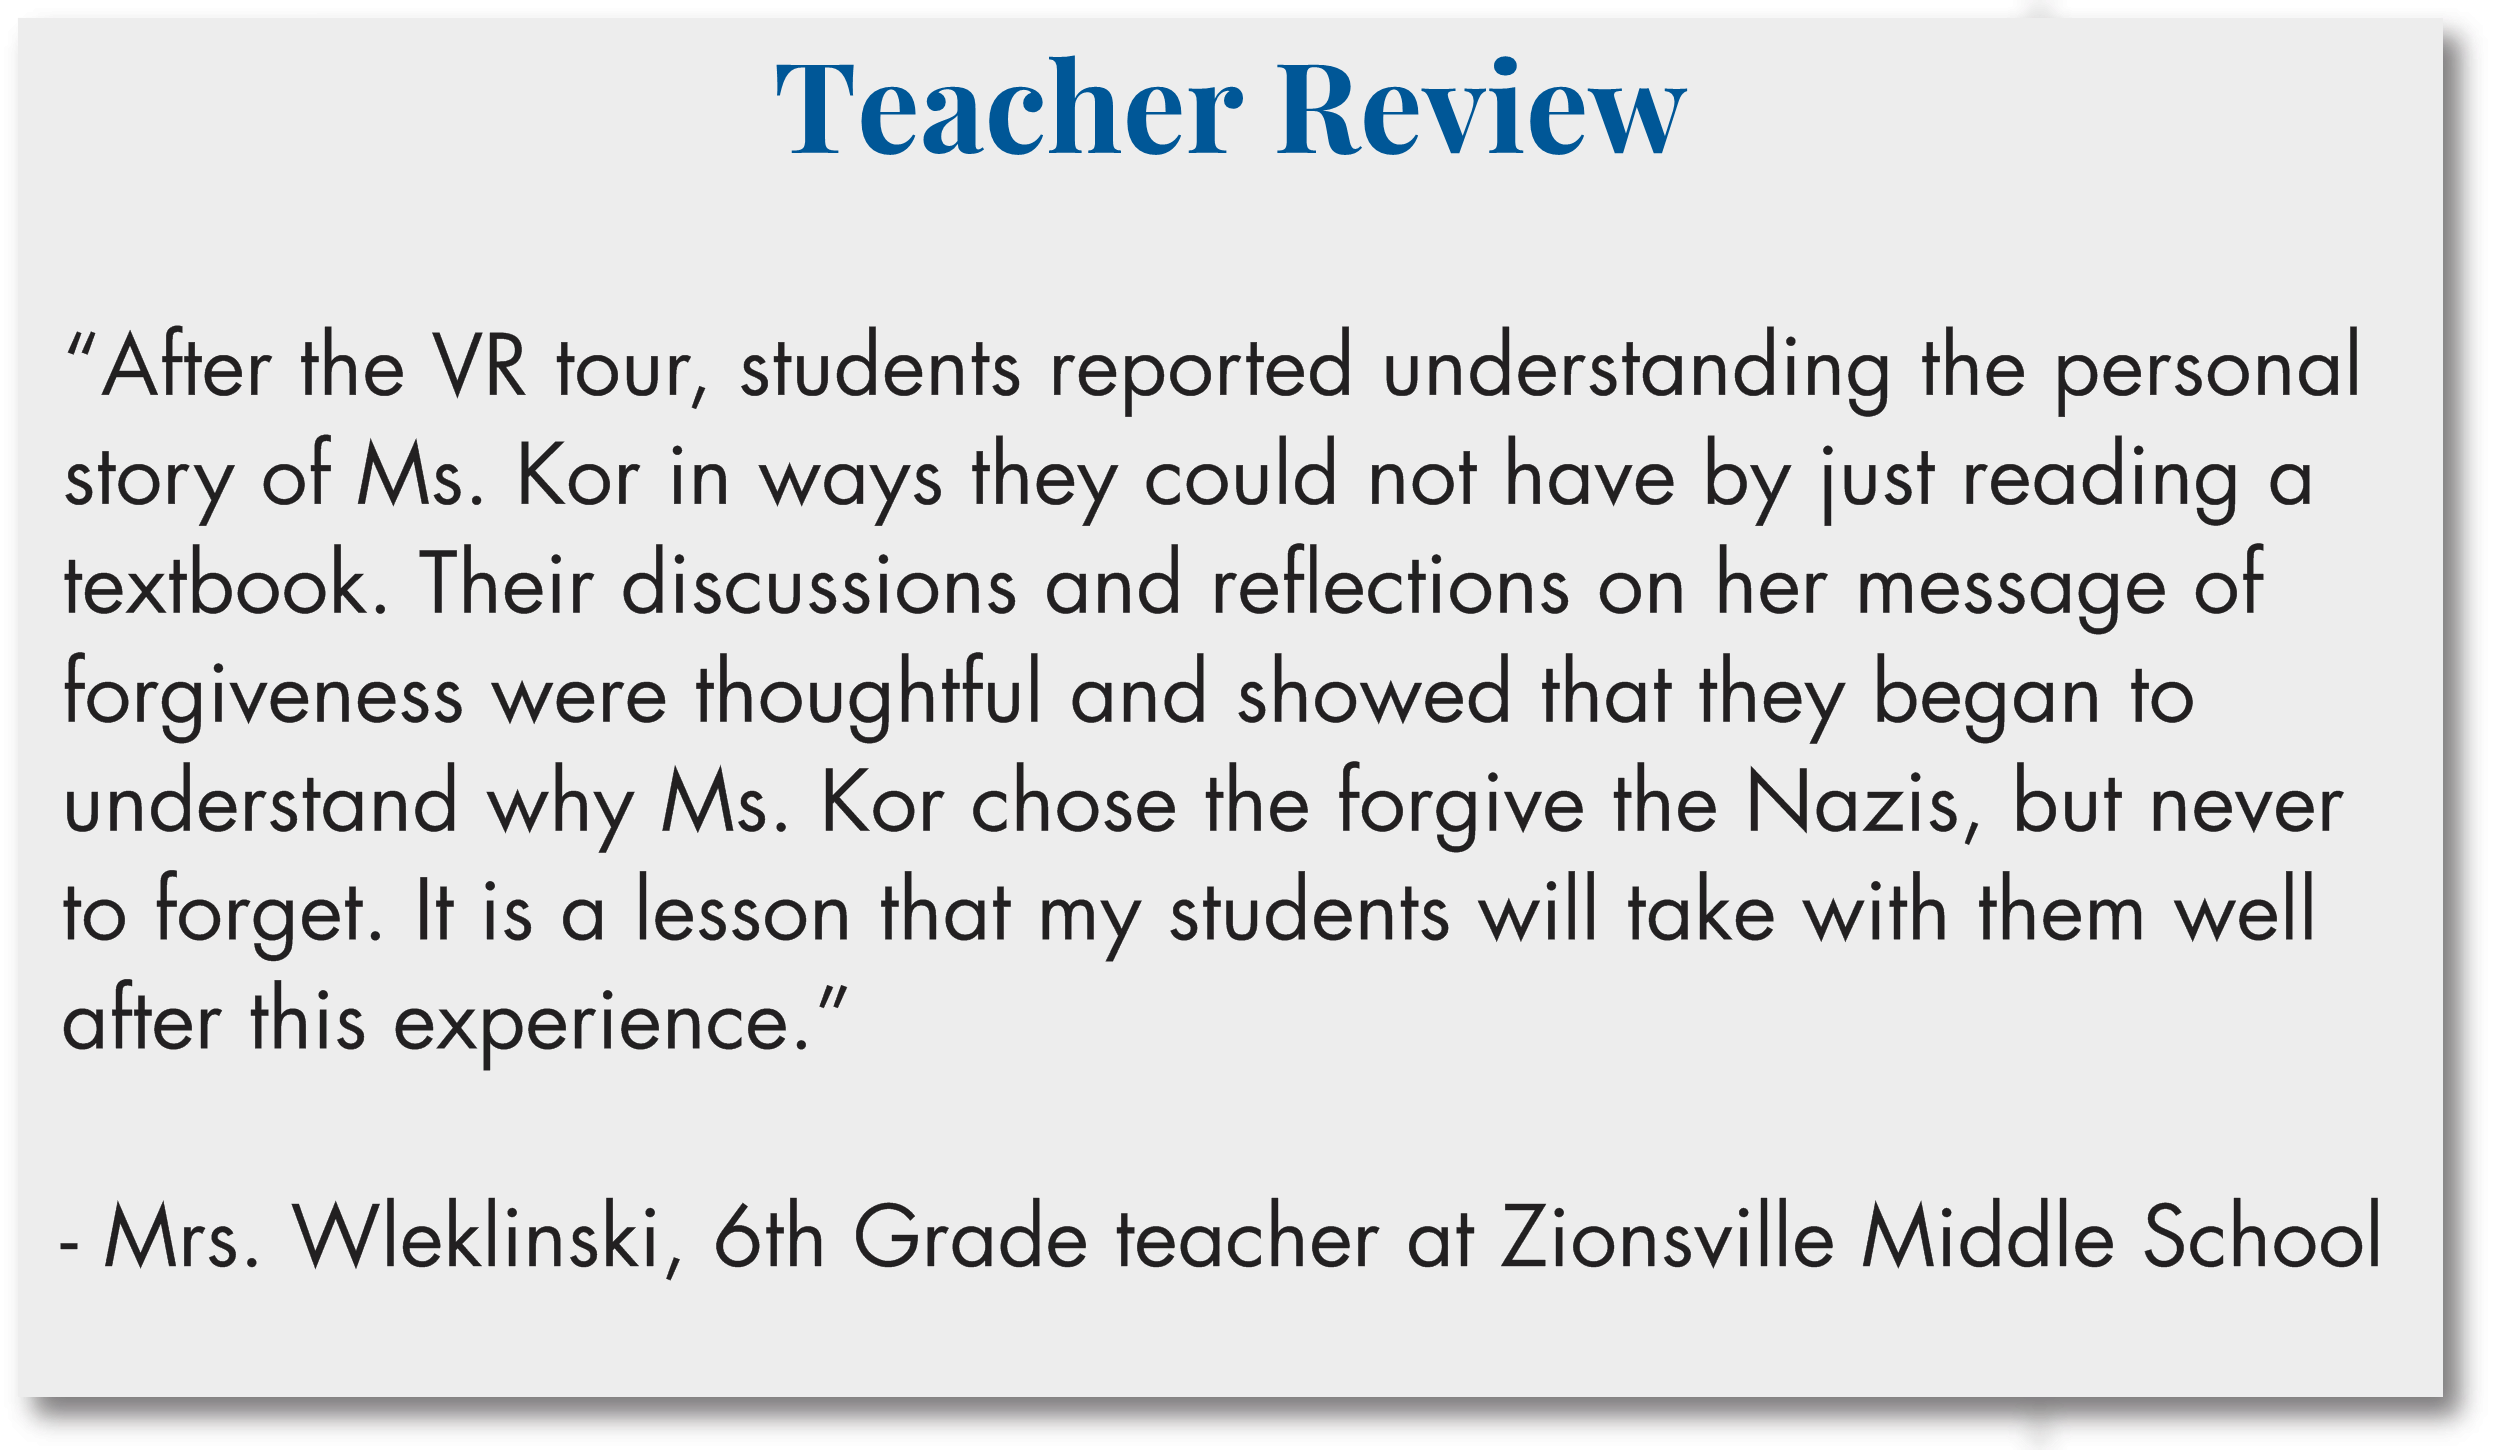 """Teacher Review  """"After the VR tour, students reported understanding the personal story of Ms. Kor in ways they could not have by just reading a textbook. Their discussions and reflections on her message of forgiveness were thoughtful and showed that they began to understand why Ms. Kor chose the forgive the Nazis, but never to forget. It is a lesson that my students will take with them well after this experience.""""  - Mrs. Wleklinski, 6th Grade teacher at Zionsville Middle School"""